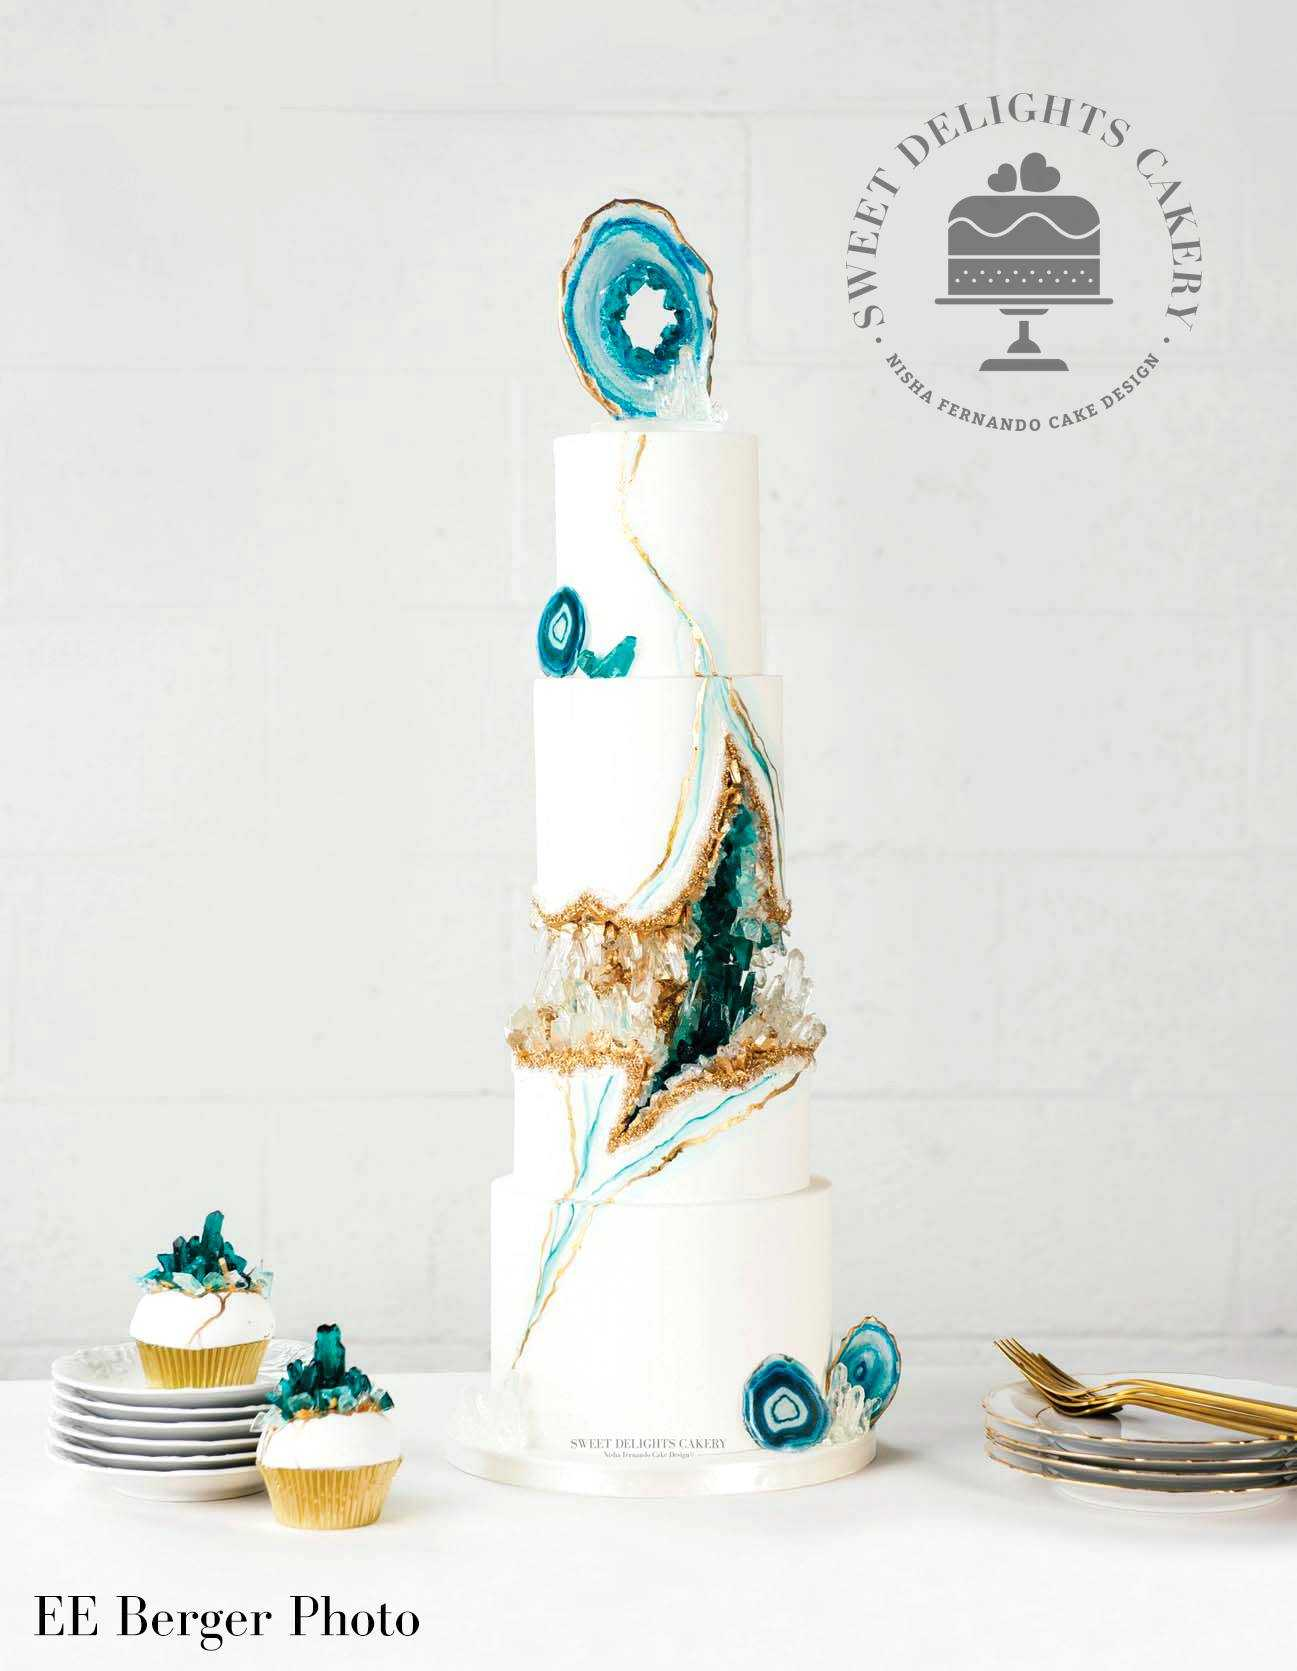 White fondant wedding cake with green crystals